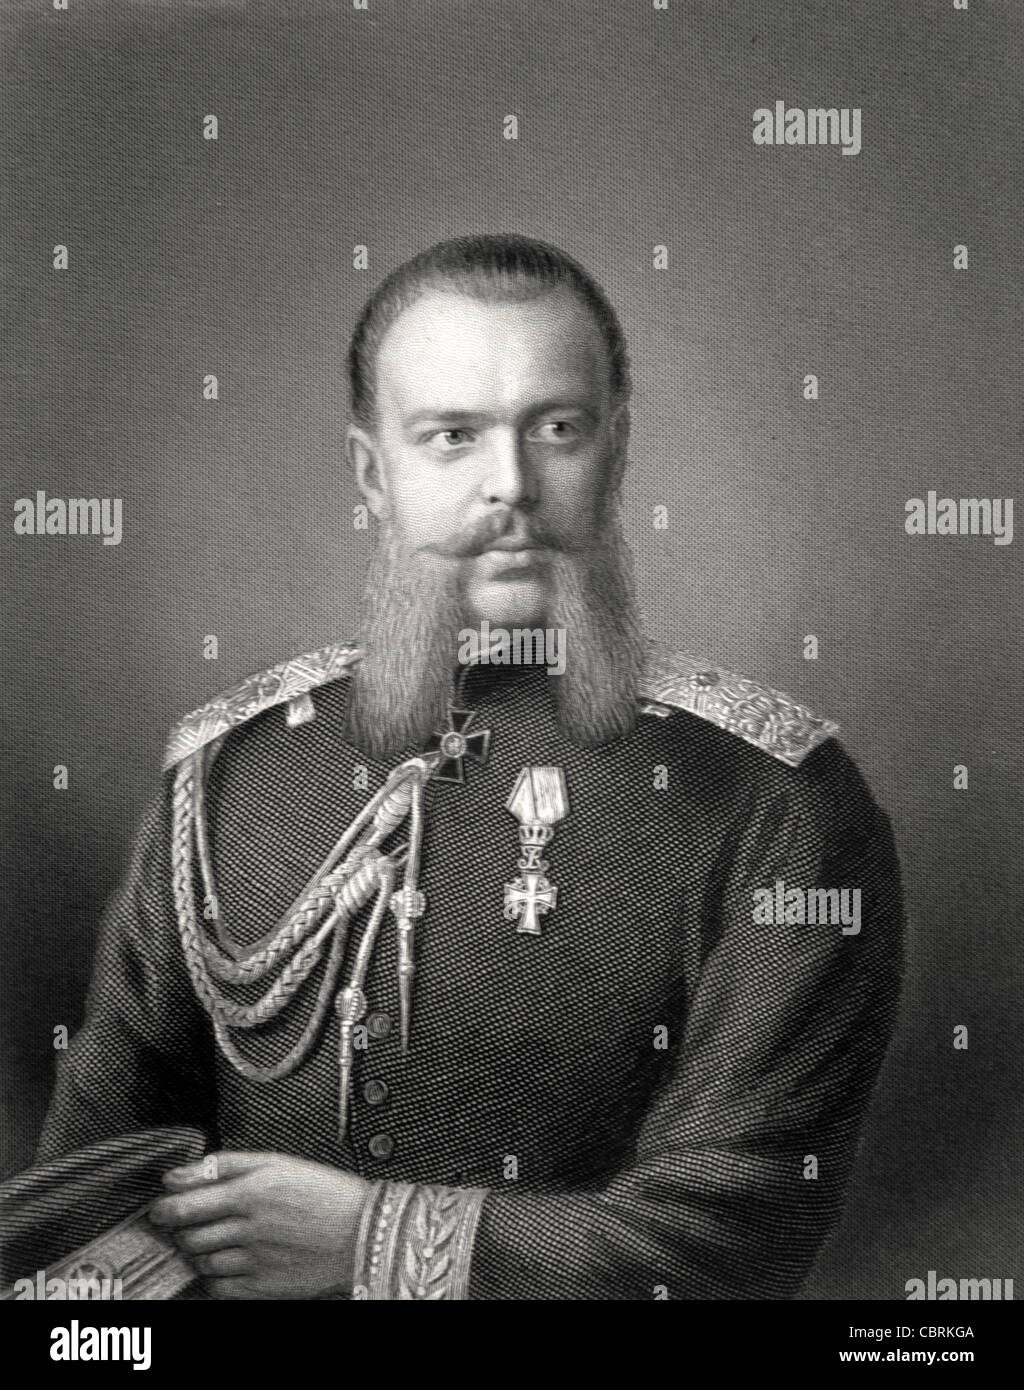 Alexander III of Russia (1845-1894) Alexandrovich Romanov, Emperor of Russia (1881-1894) the Peacemaker c19th Engraving Portrait